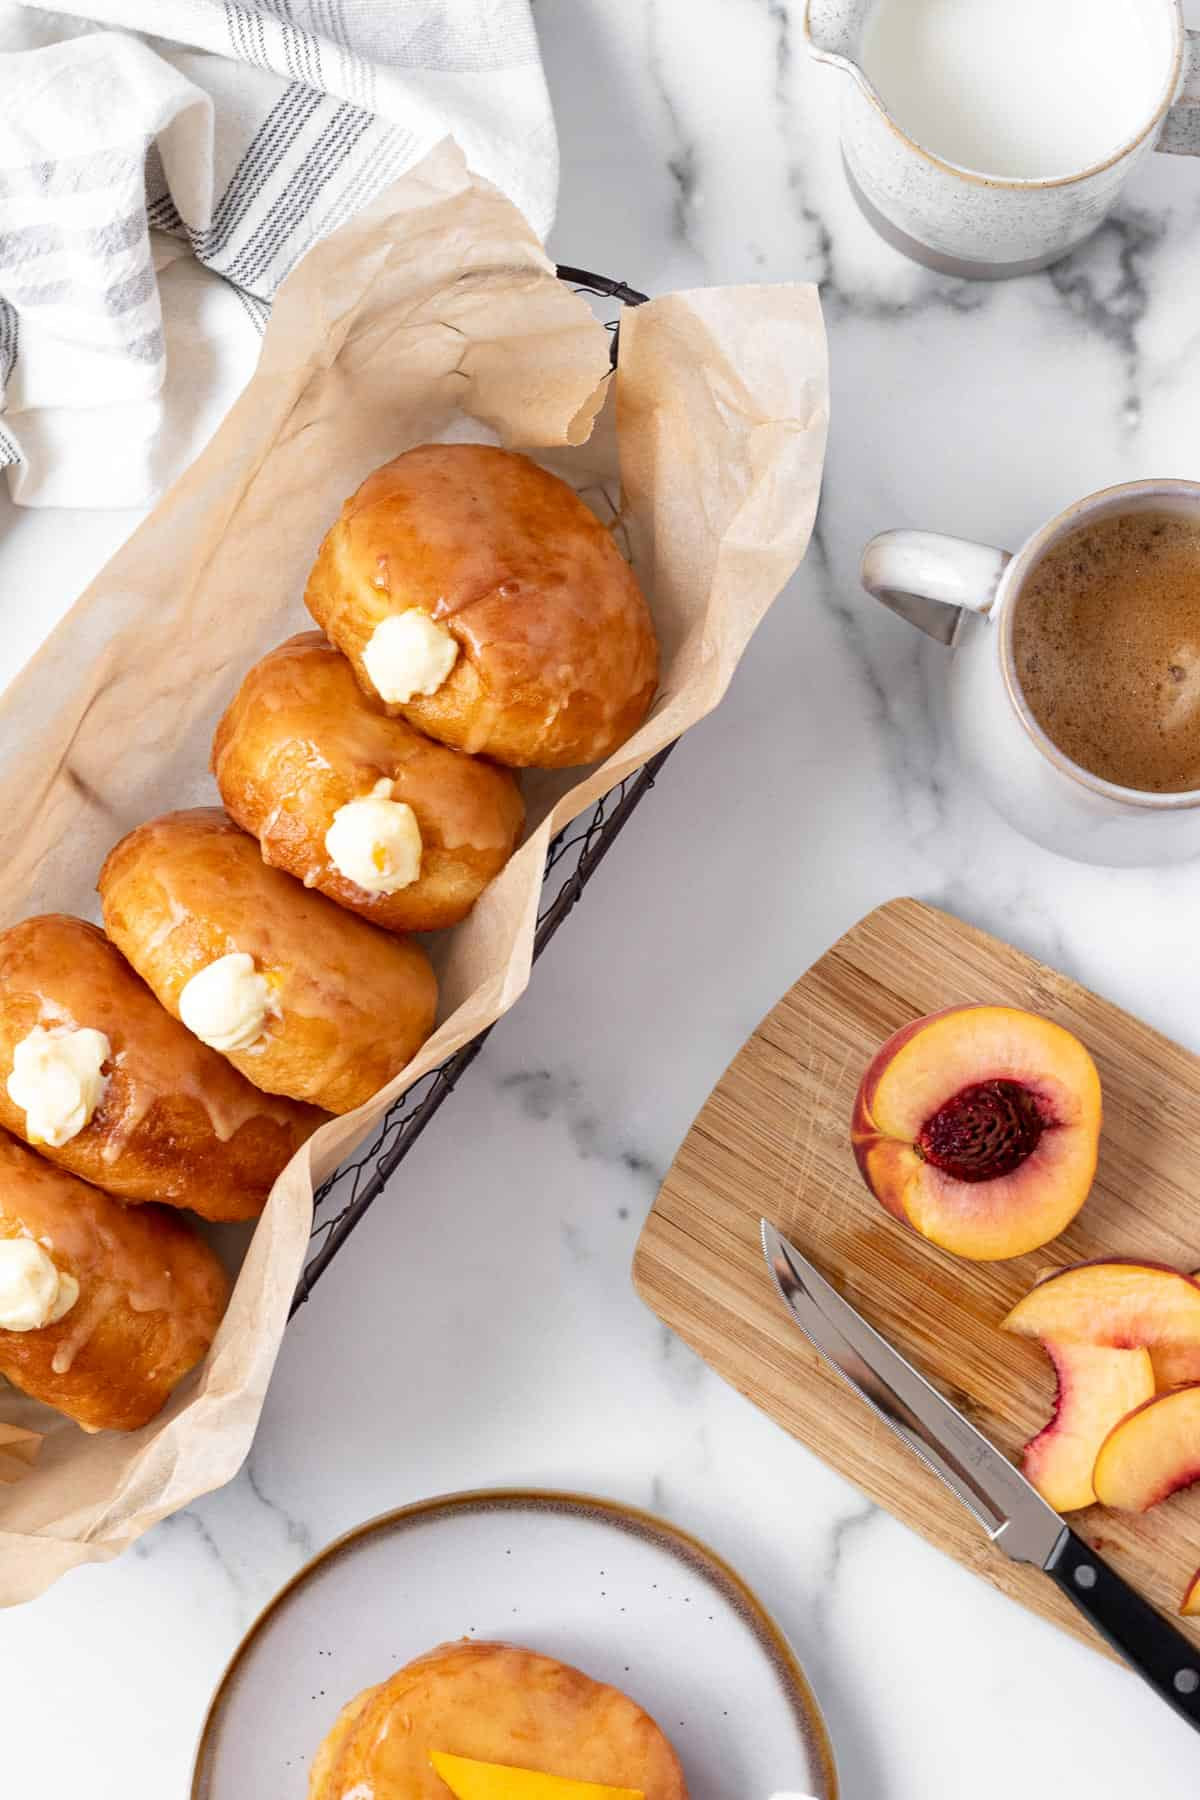 peach doughnuts with vanilla filling in a basket with cutting board with sliced peach